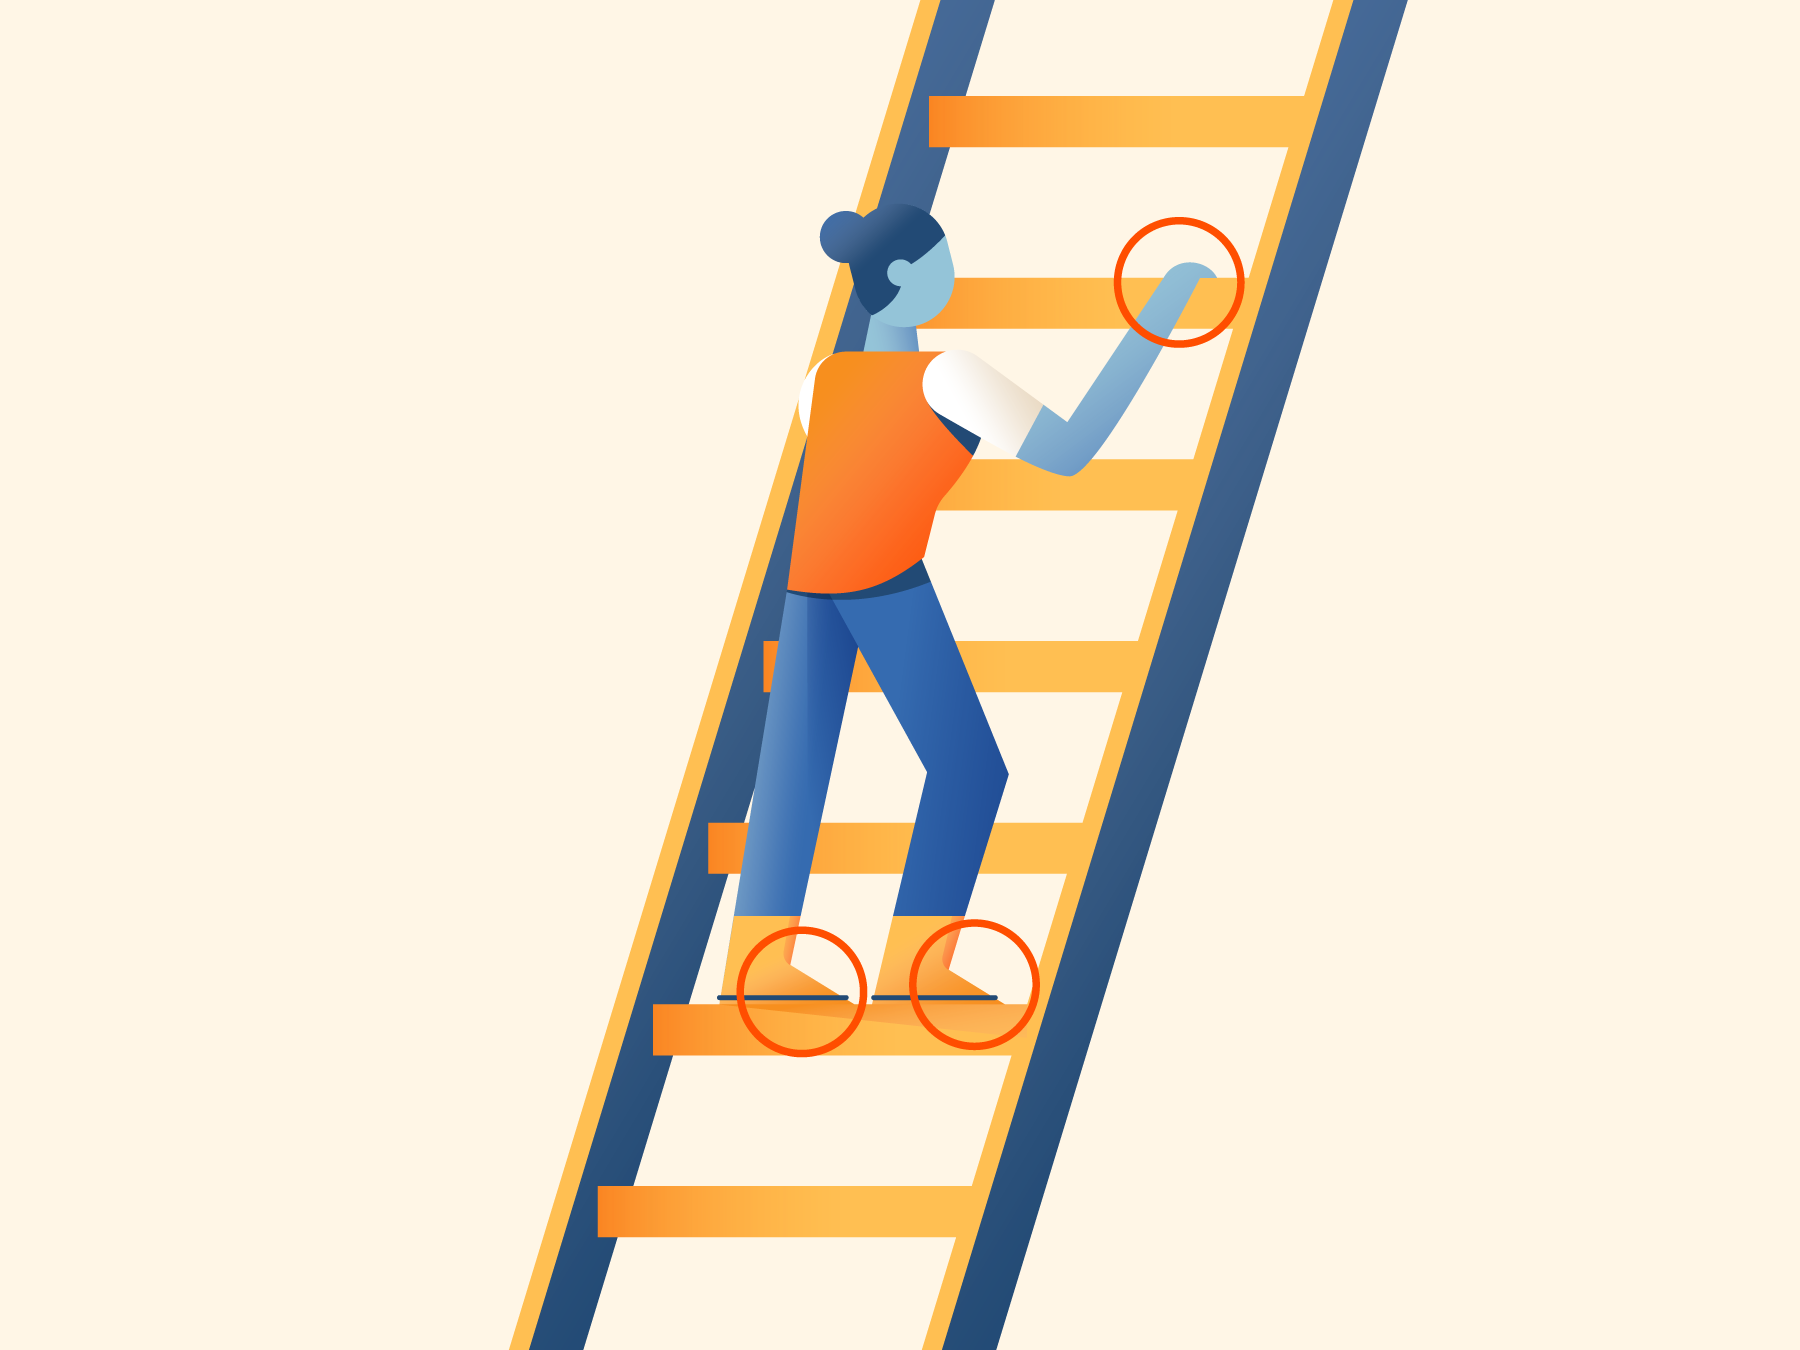 Three Points of Contact: How to Prevent Falls